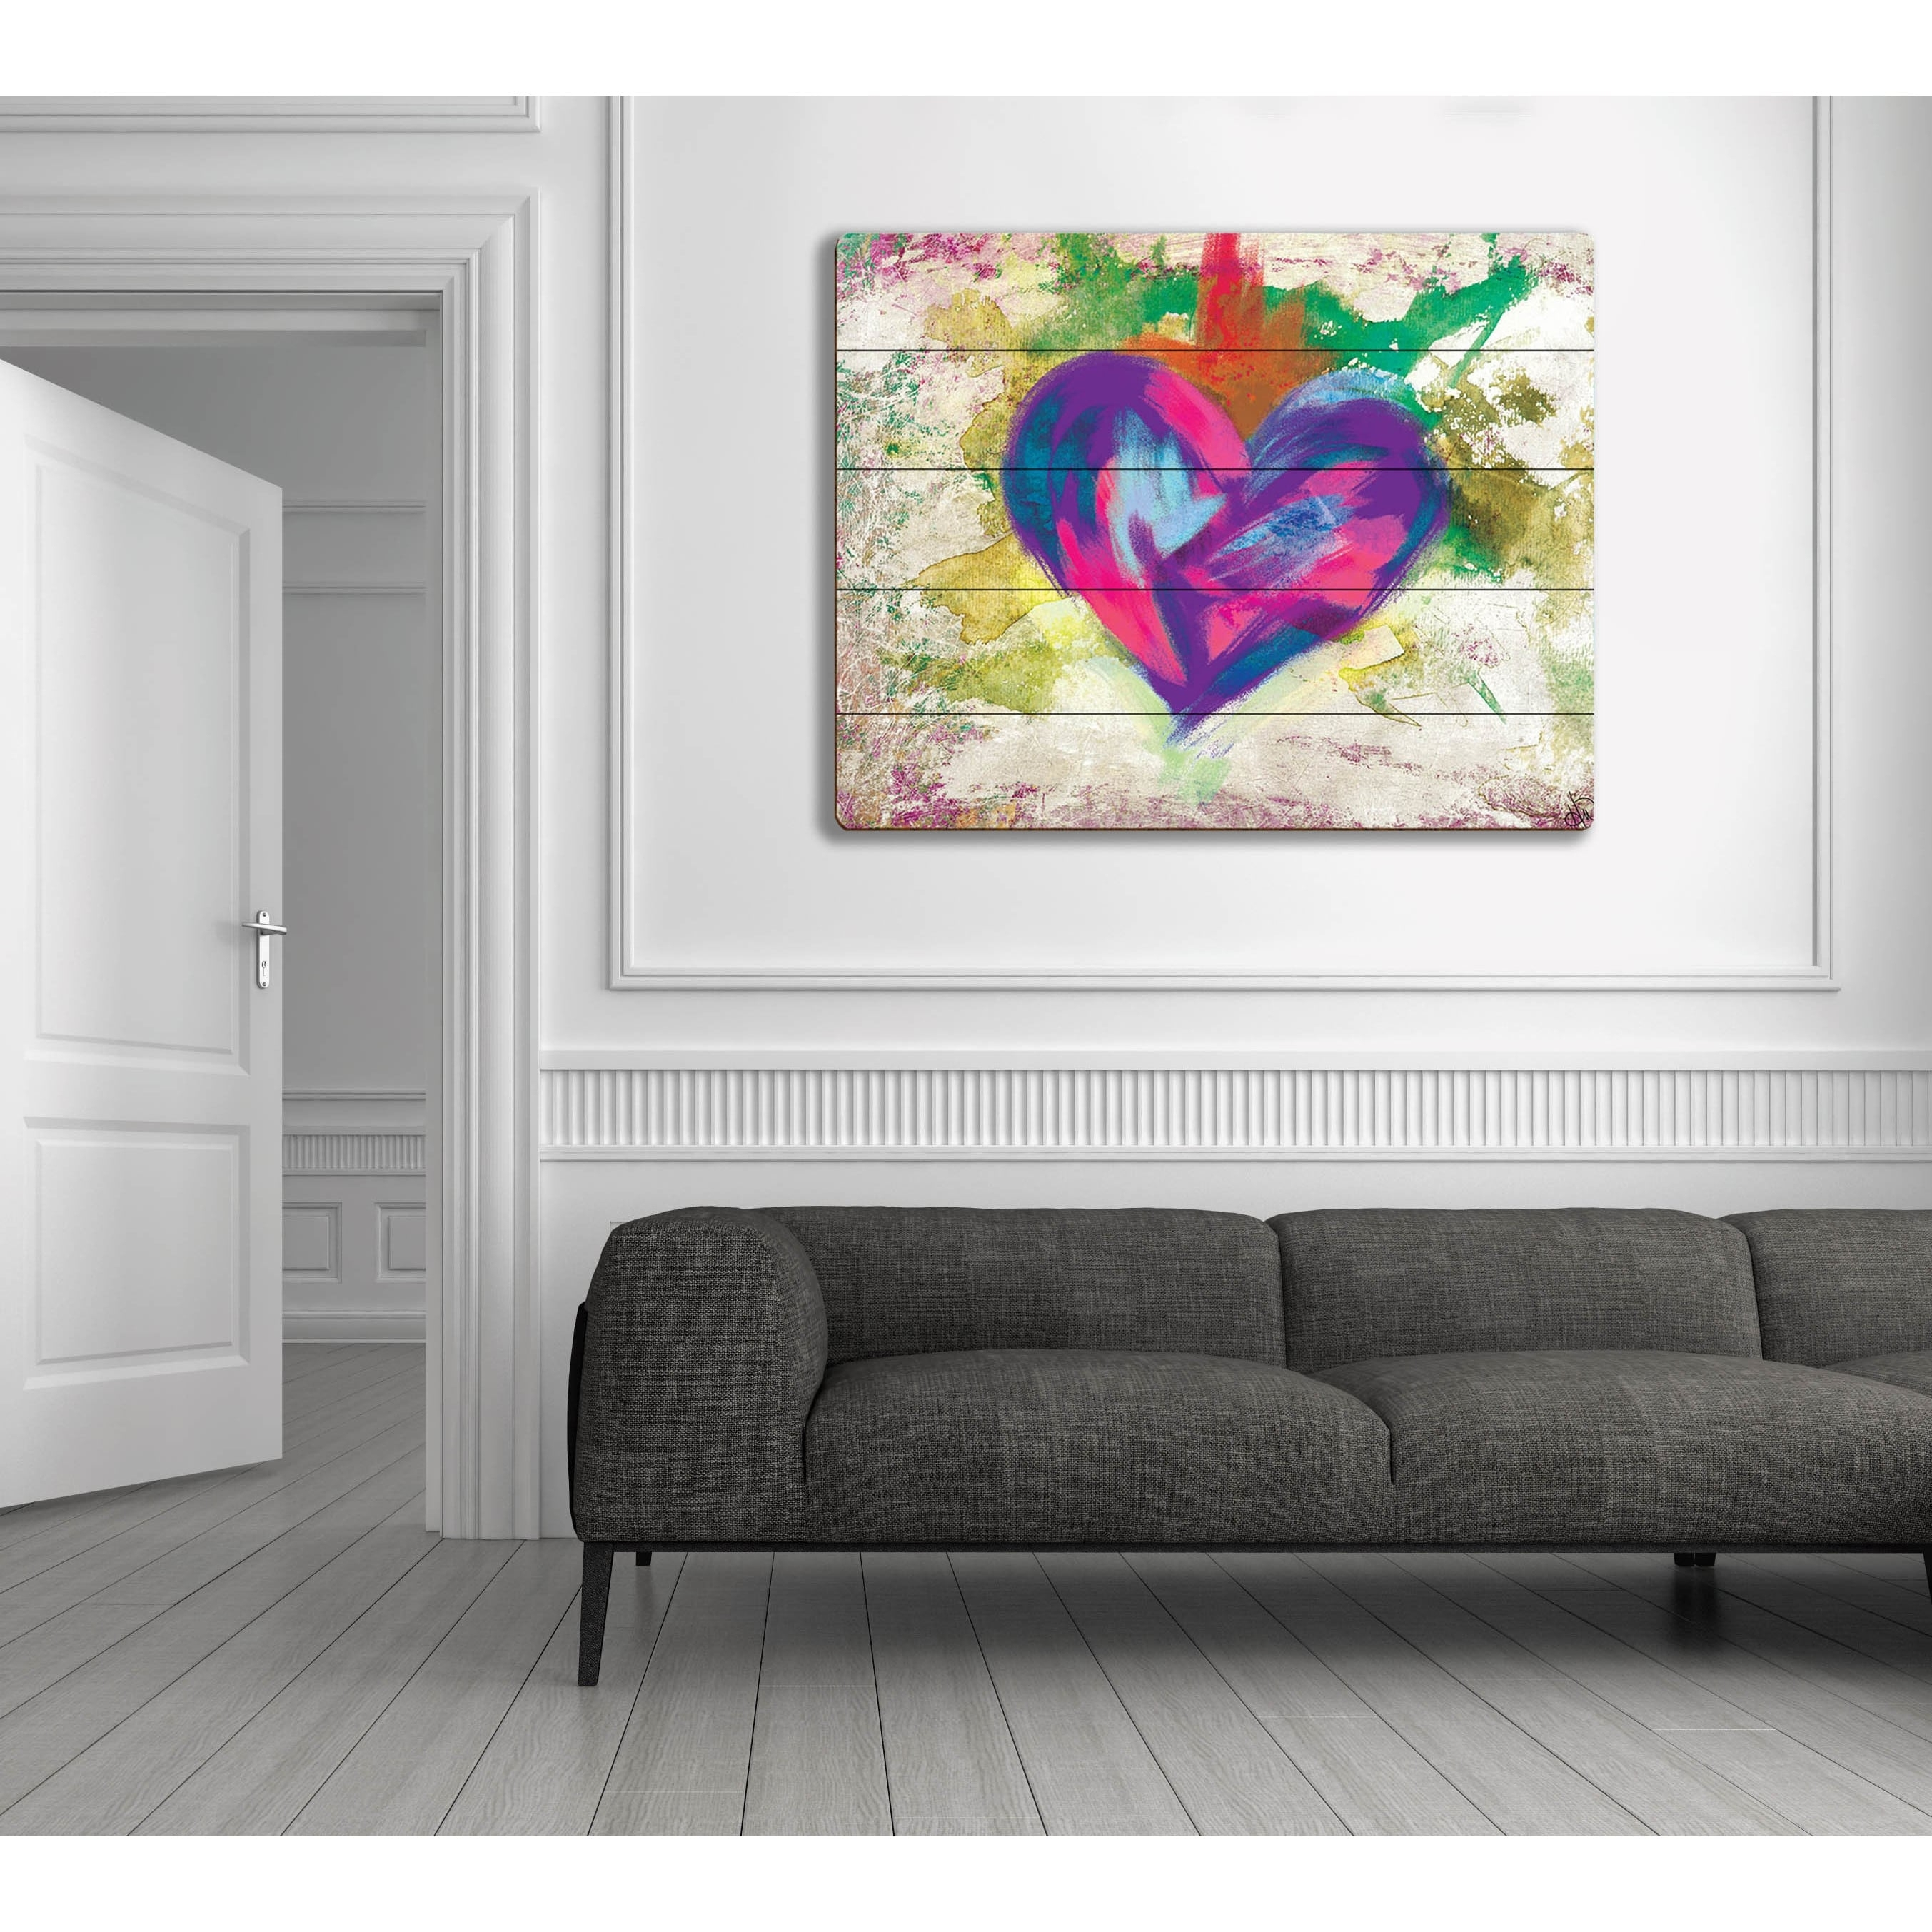 Up Beat Violet Abstract Heart Wall Art On Wood – Free Shipping For Best And Newest Abstract Heart Wall Art (View 7 of 20)